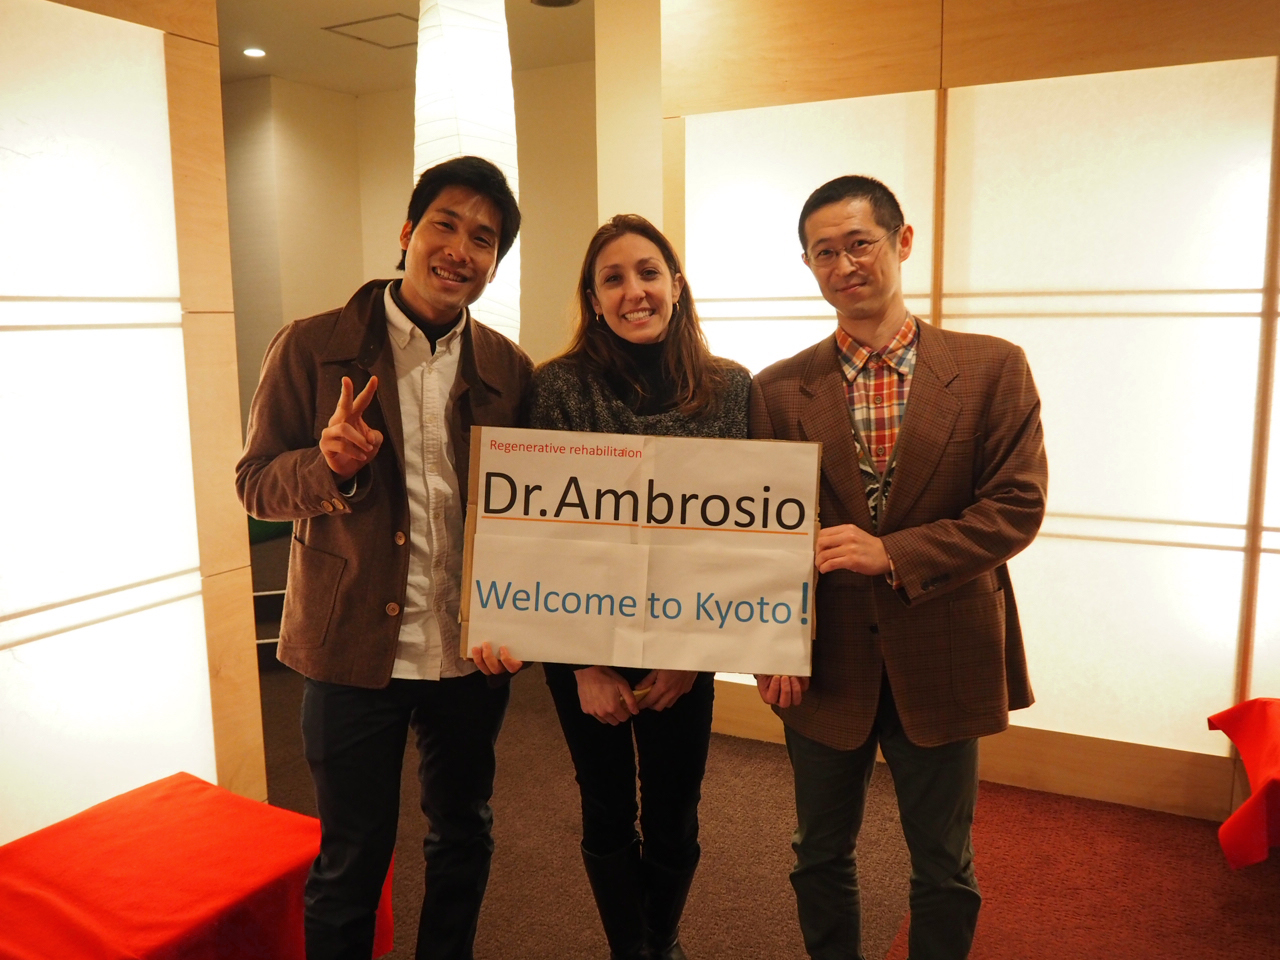 Dr.Ambrosio and us